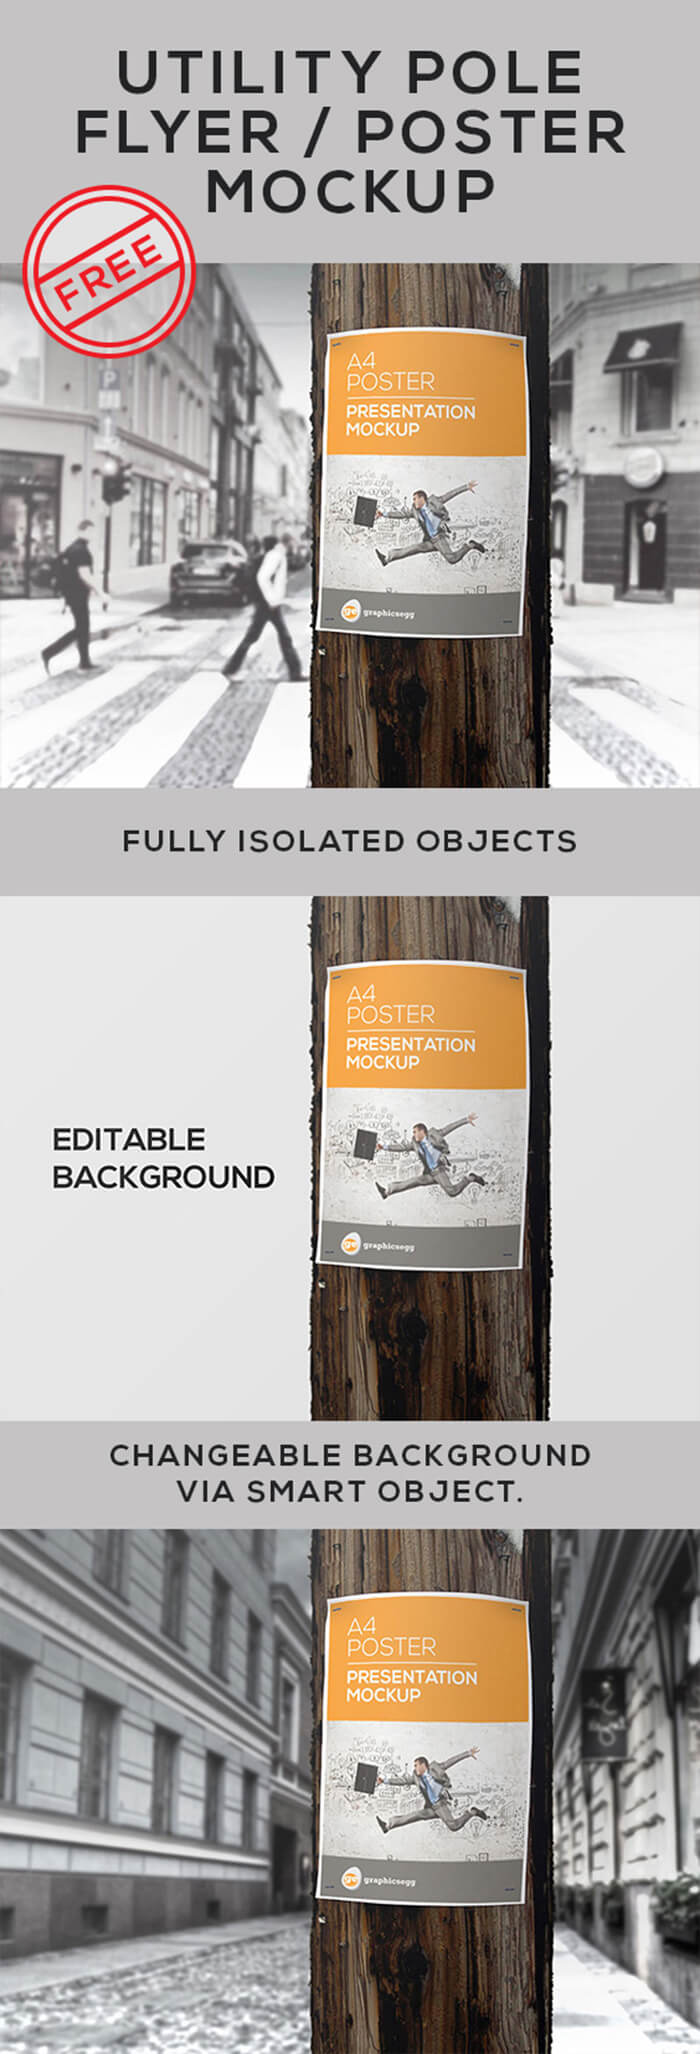 Free Utility Pole Flyer Poster Mockup PSD Template1